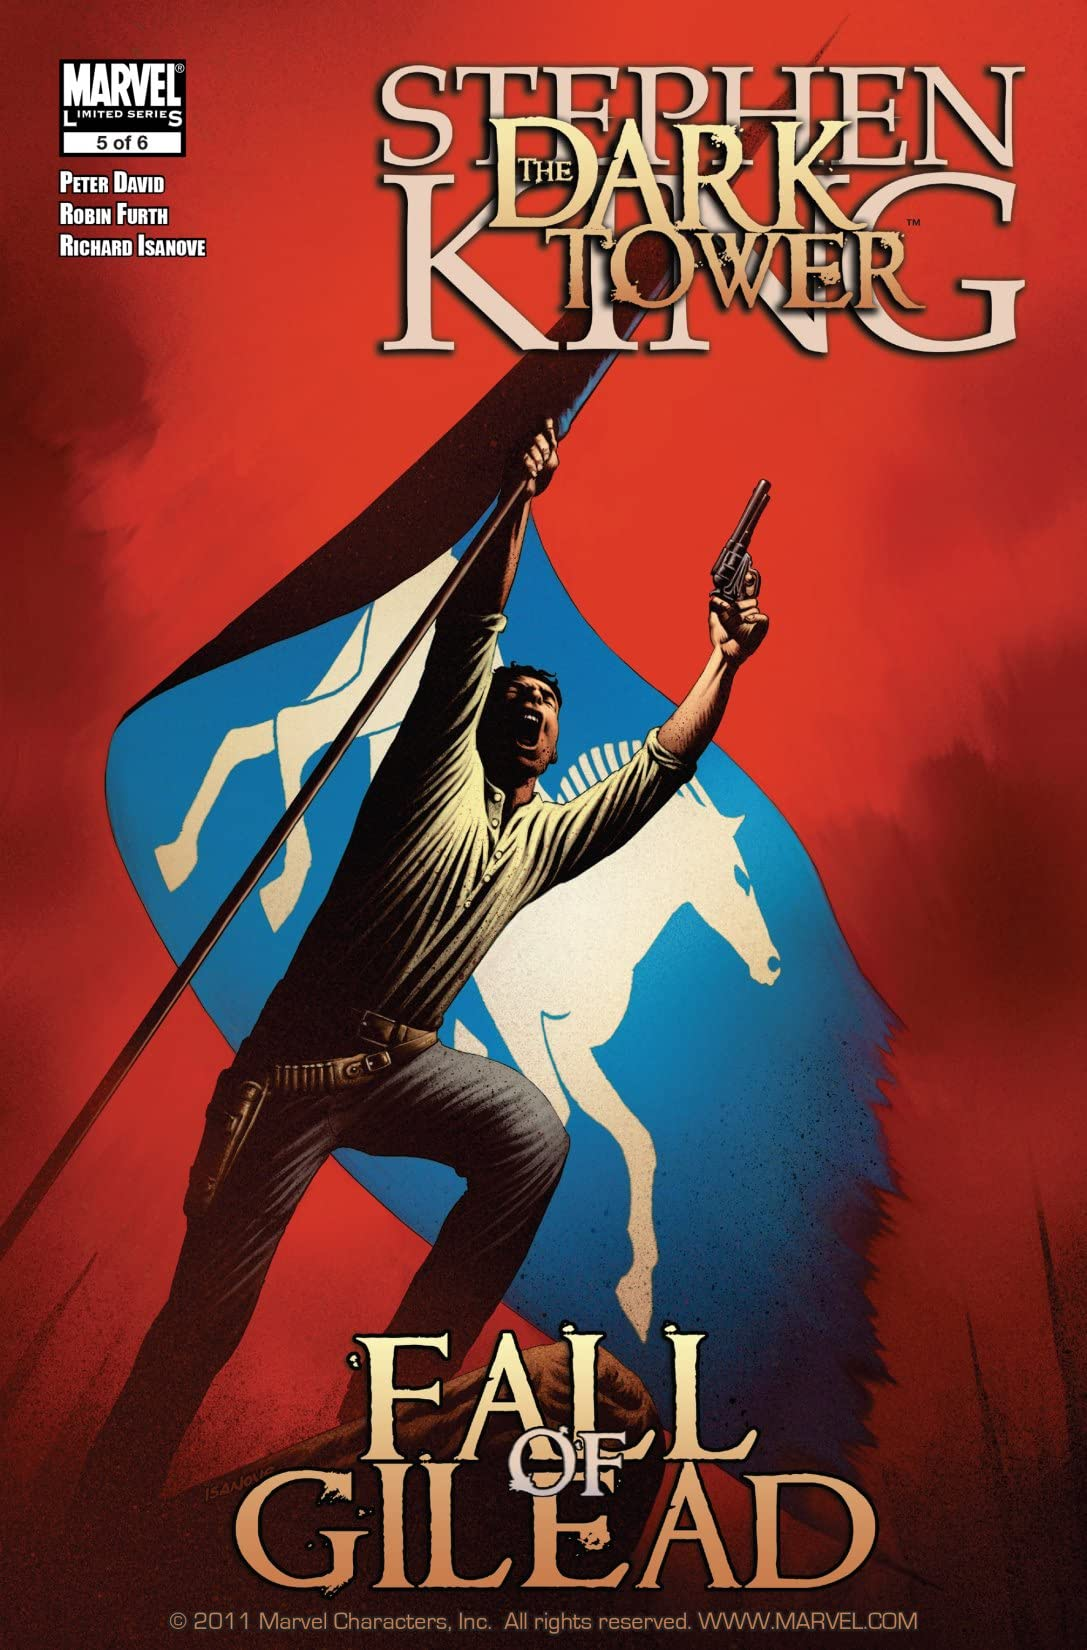 Dark Tower: The Fall of Gilead #5 (of 6)